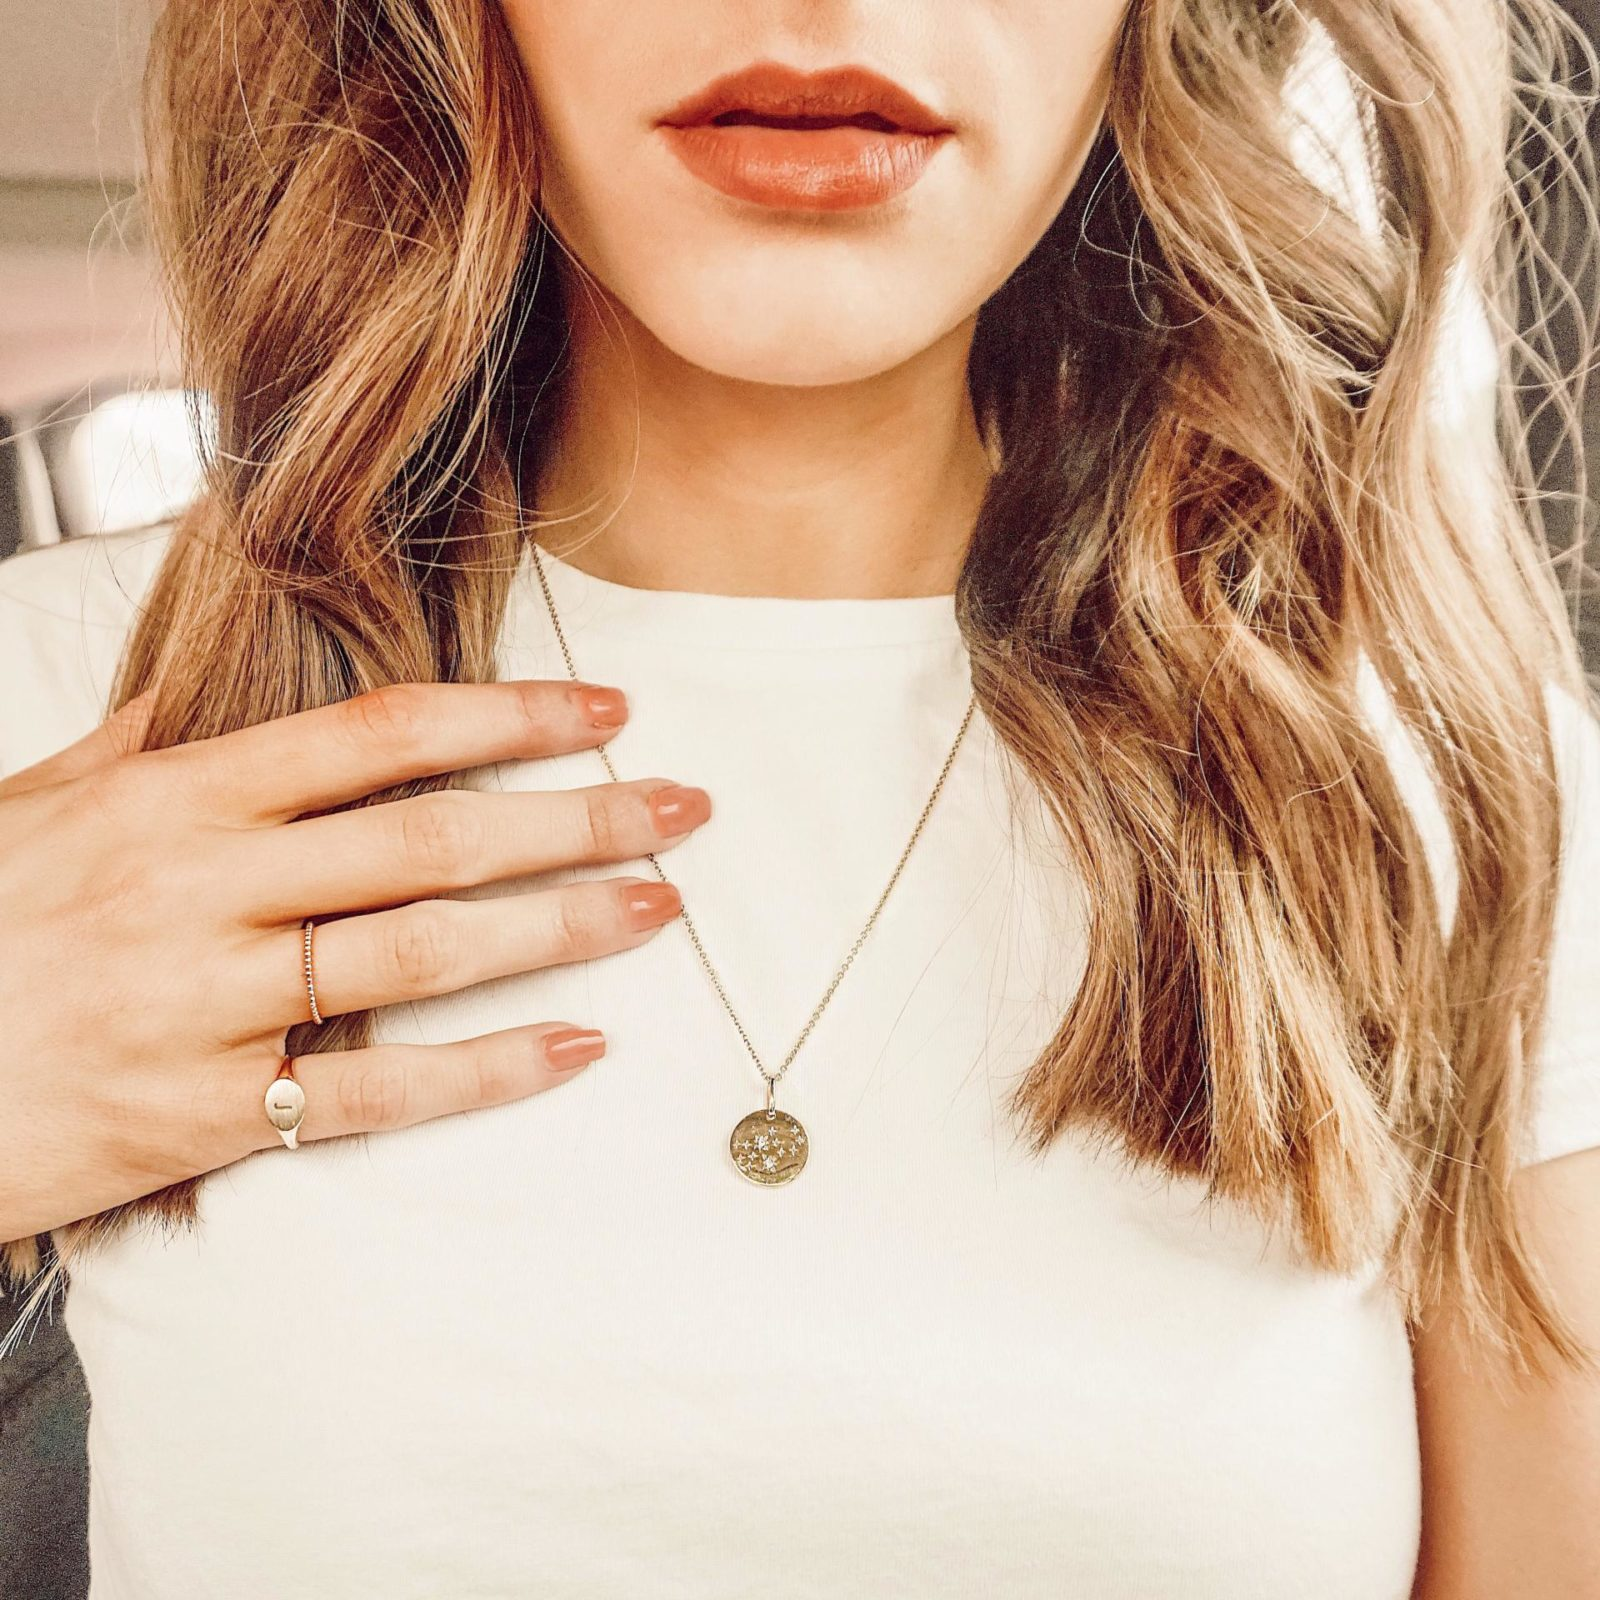 Mejuri Jewelry Review: Luxury on a Budget